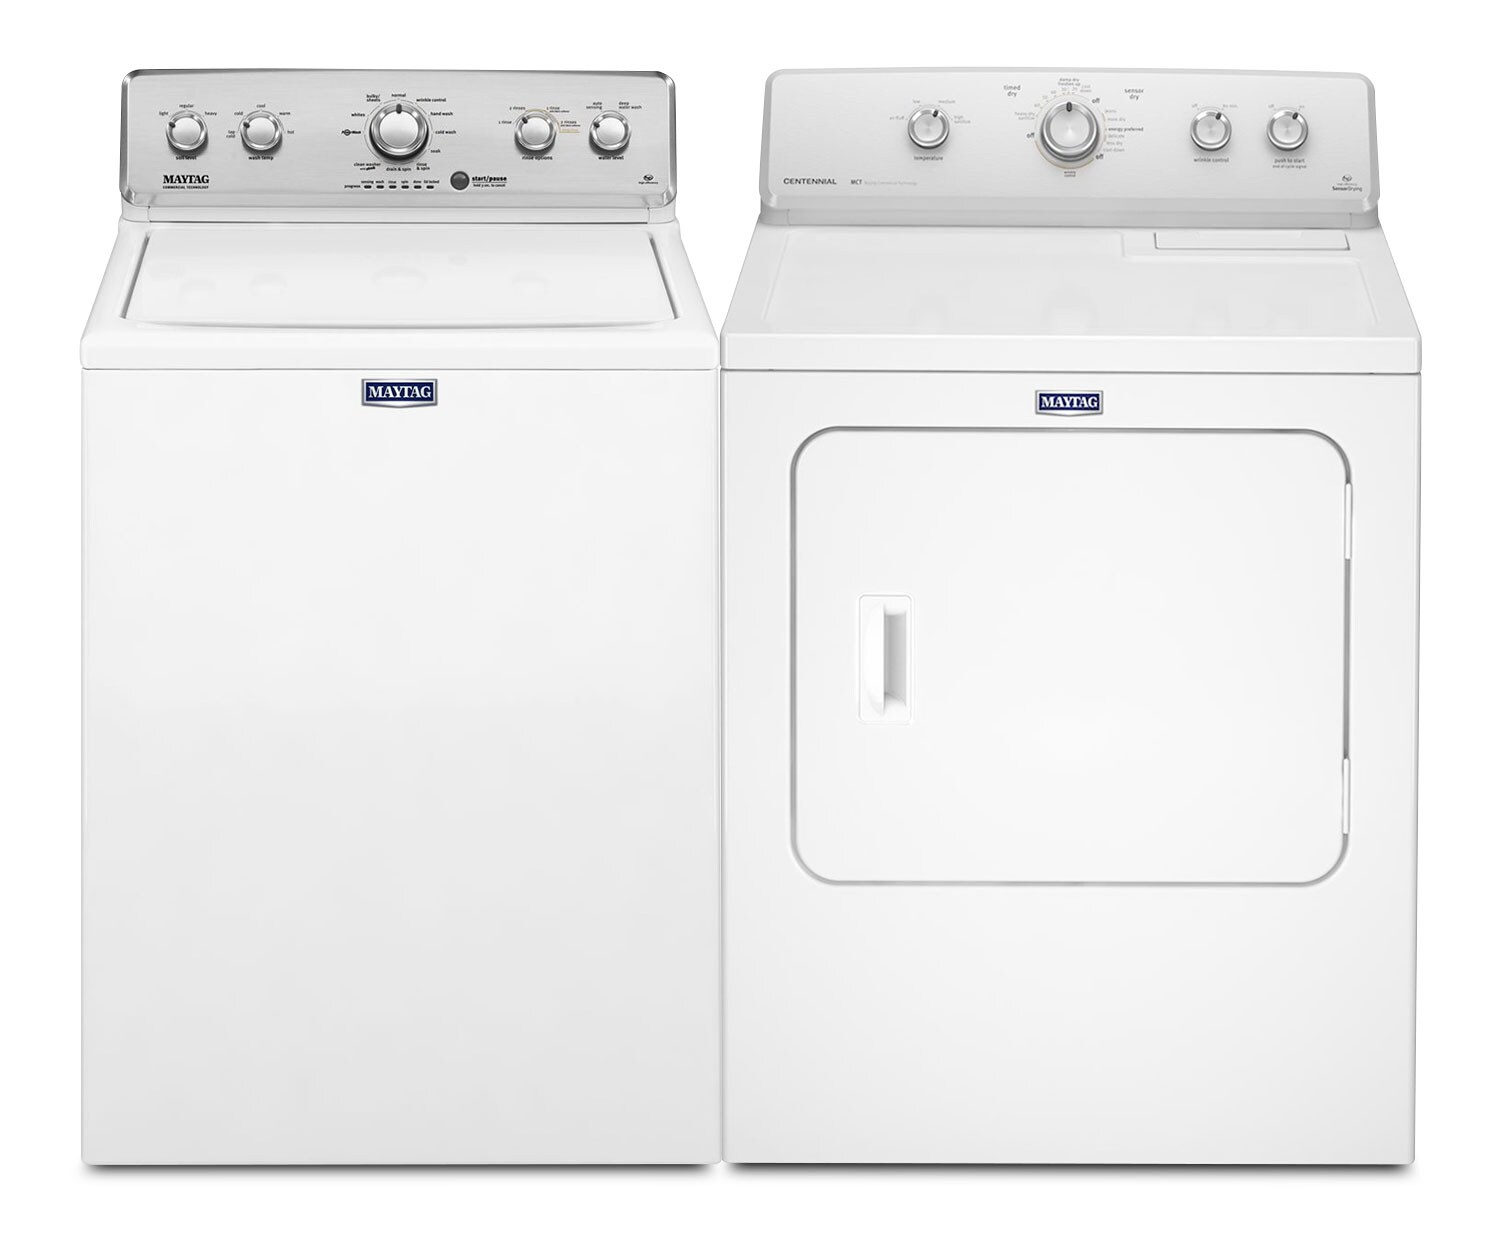 Maytag 3.6 Cu. Ft. Top-Load Washer and 7.0 Cu. Ft. Electric Dryer – White